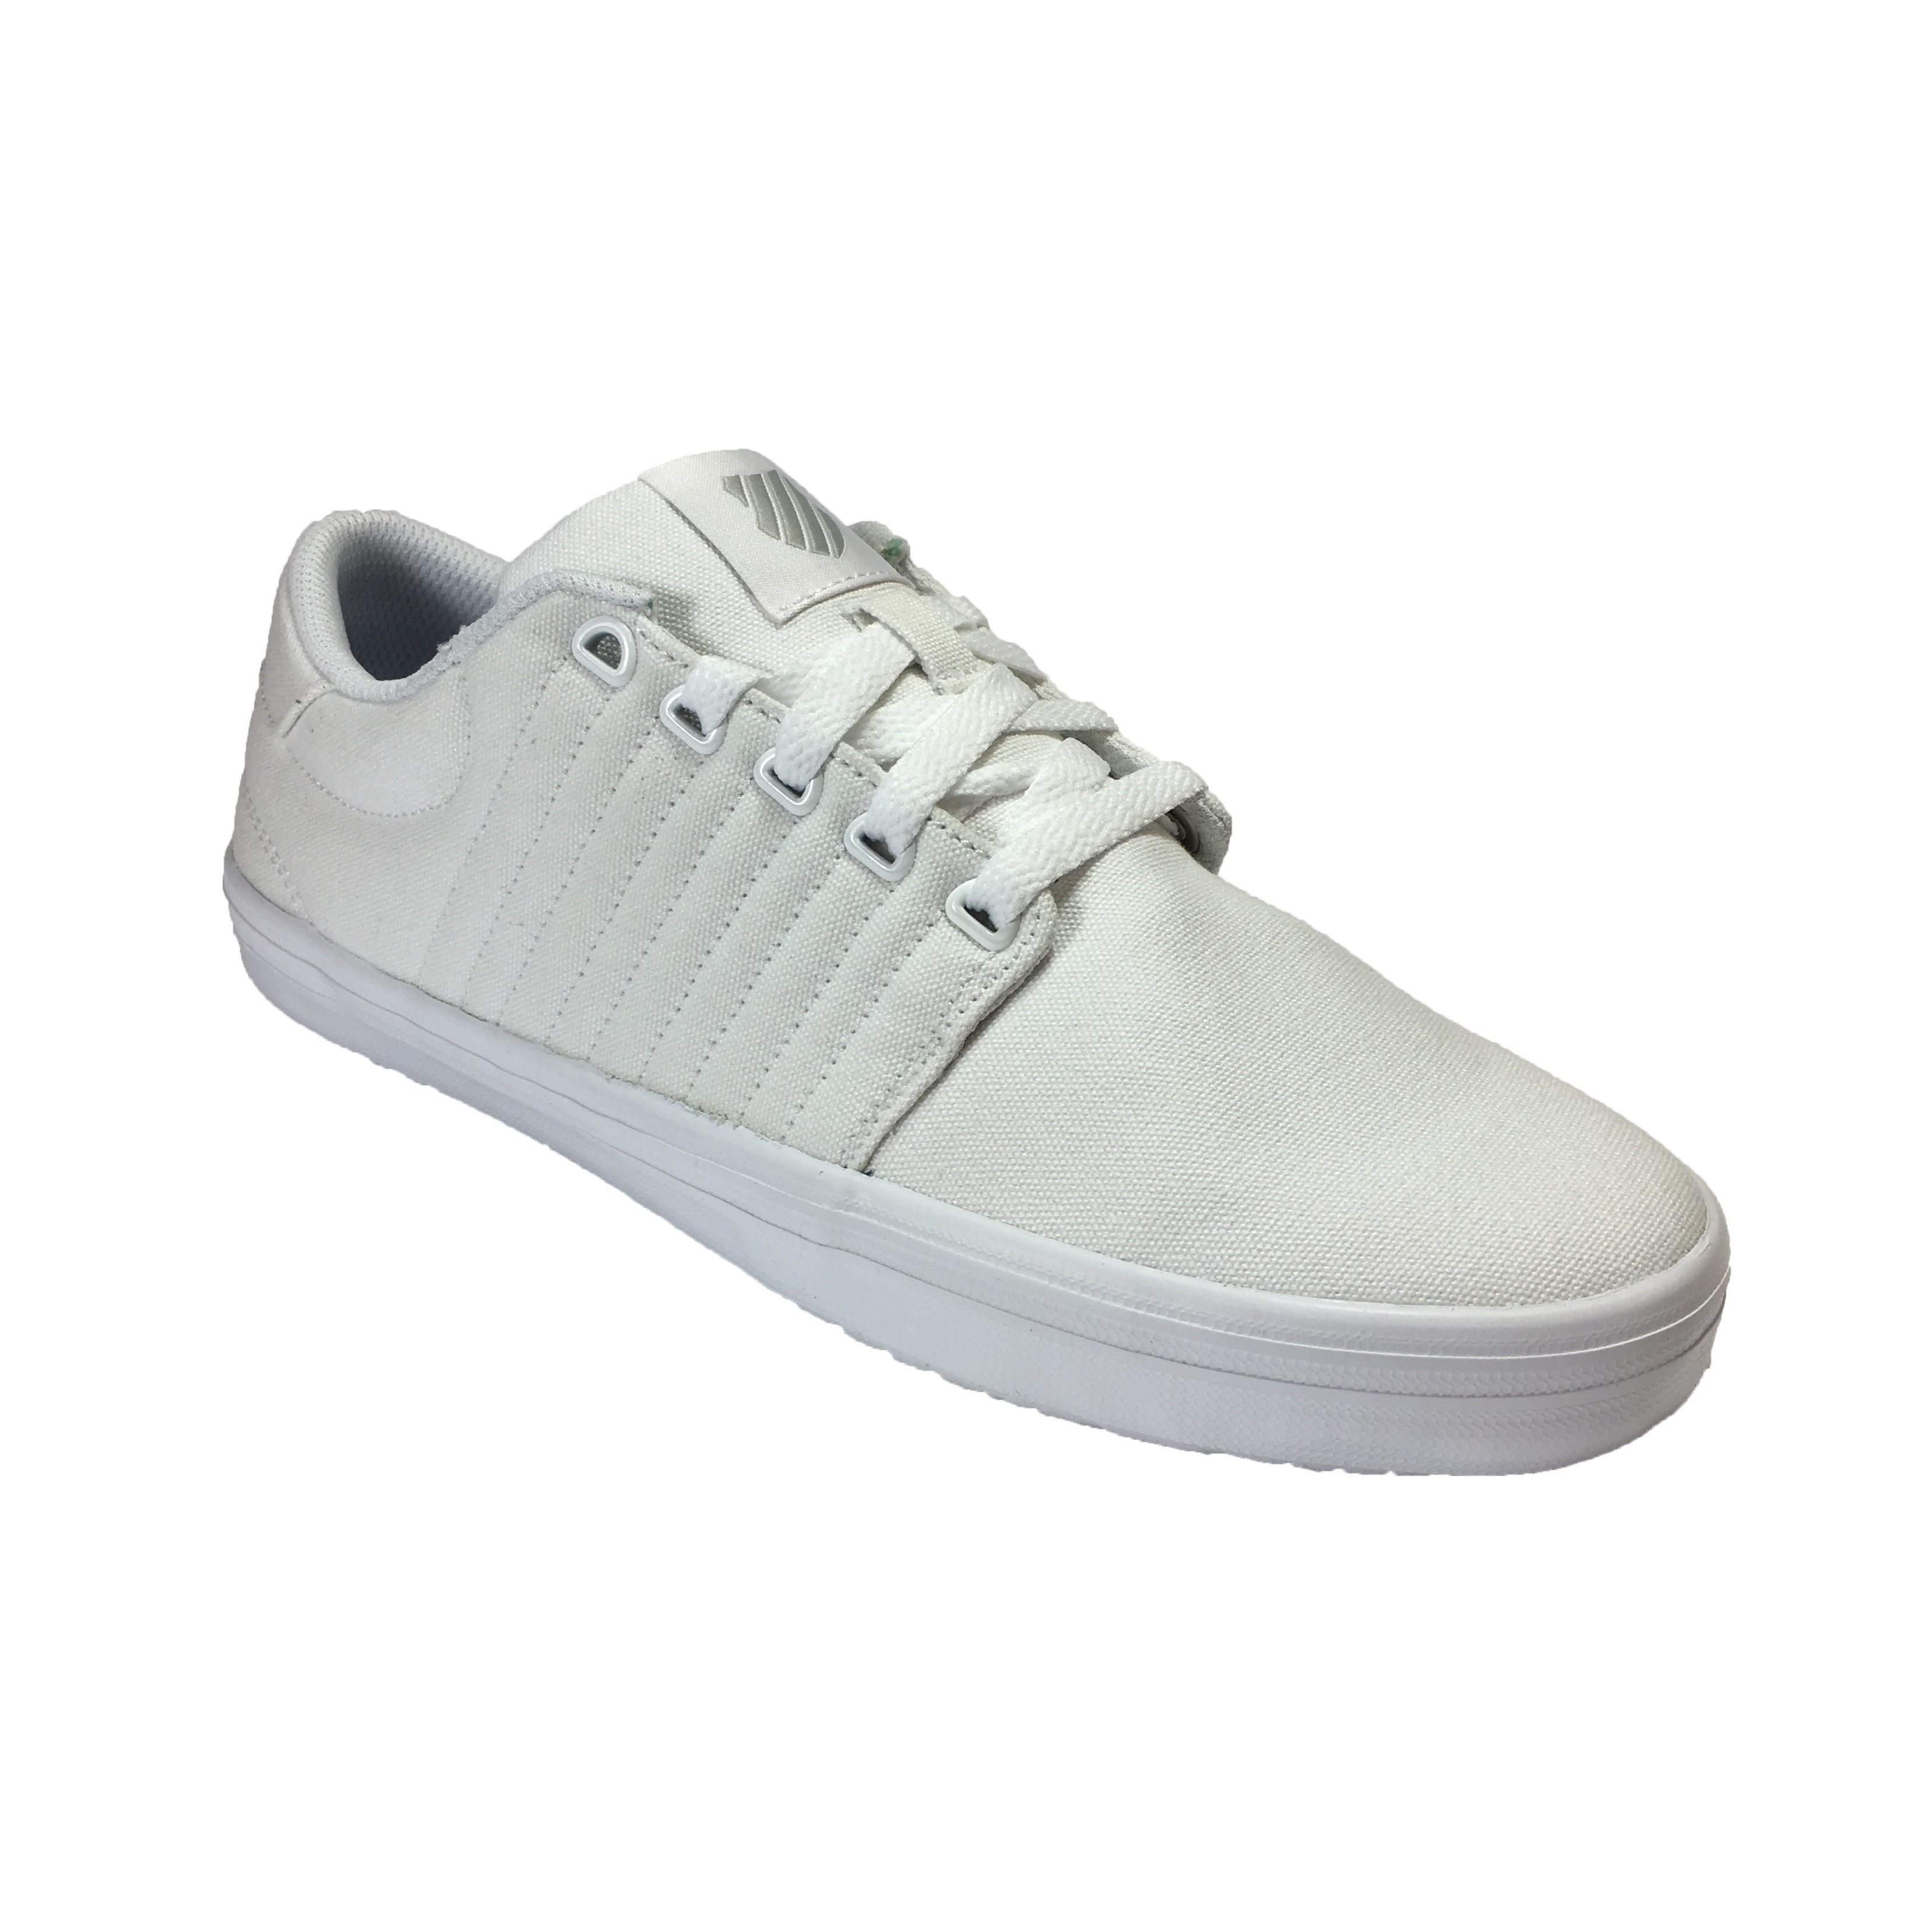 K Swiss Men S Backspin Canvas Shoes Trainers White Gull Jean Scene